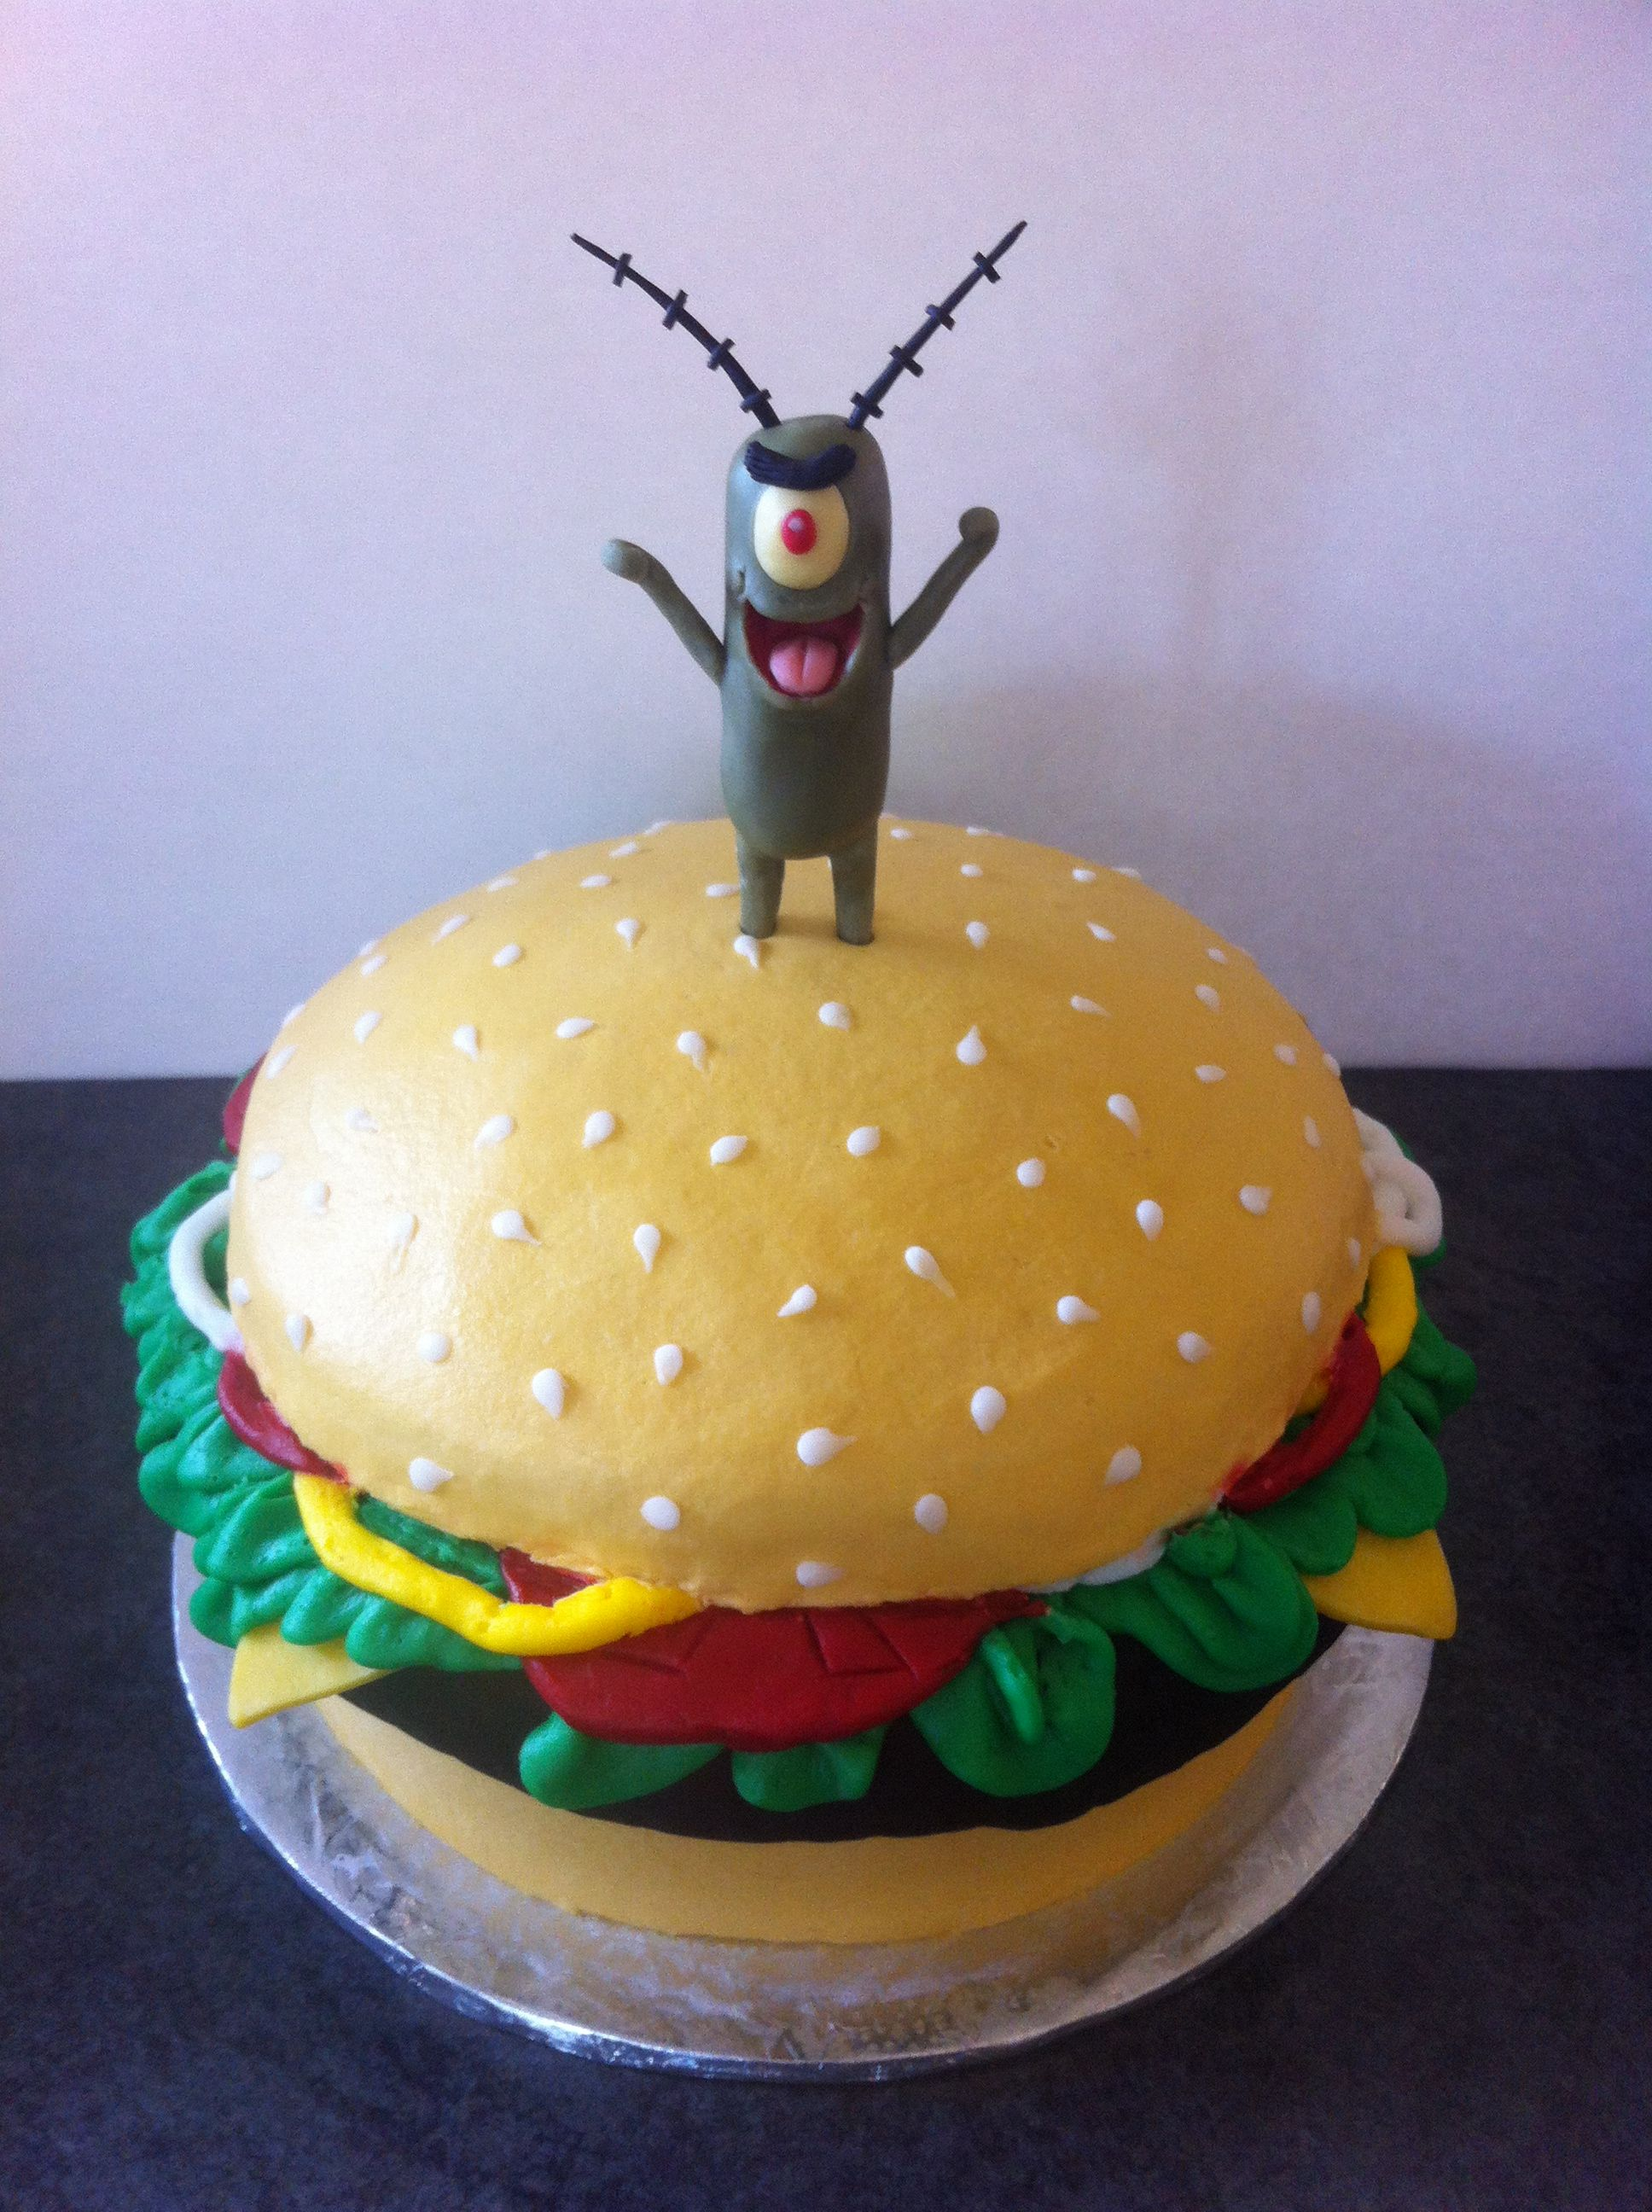 plankton gets the krabby patty cake krys wichman this would be